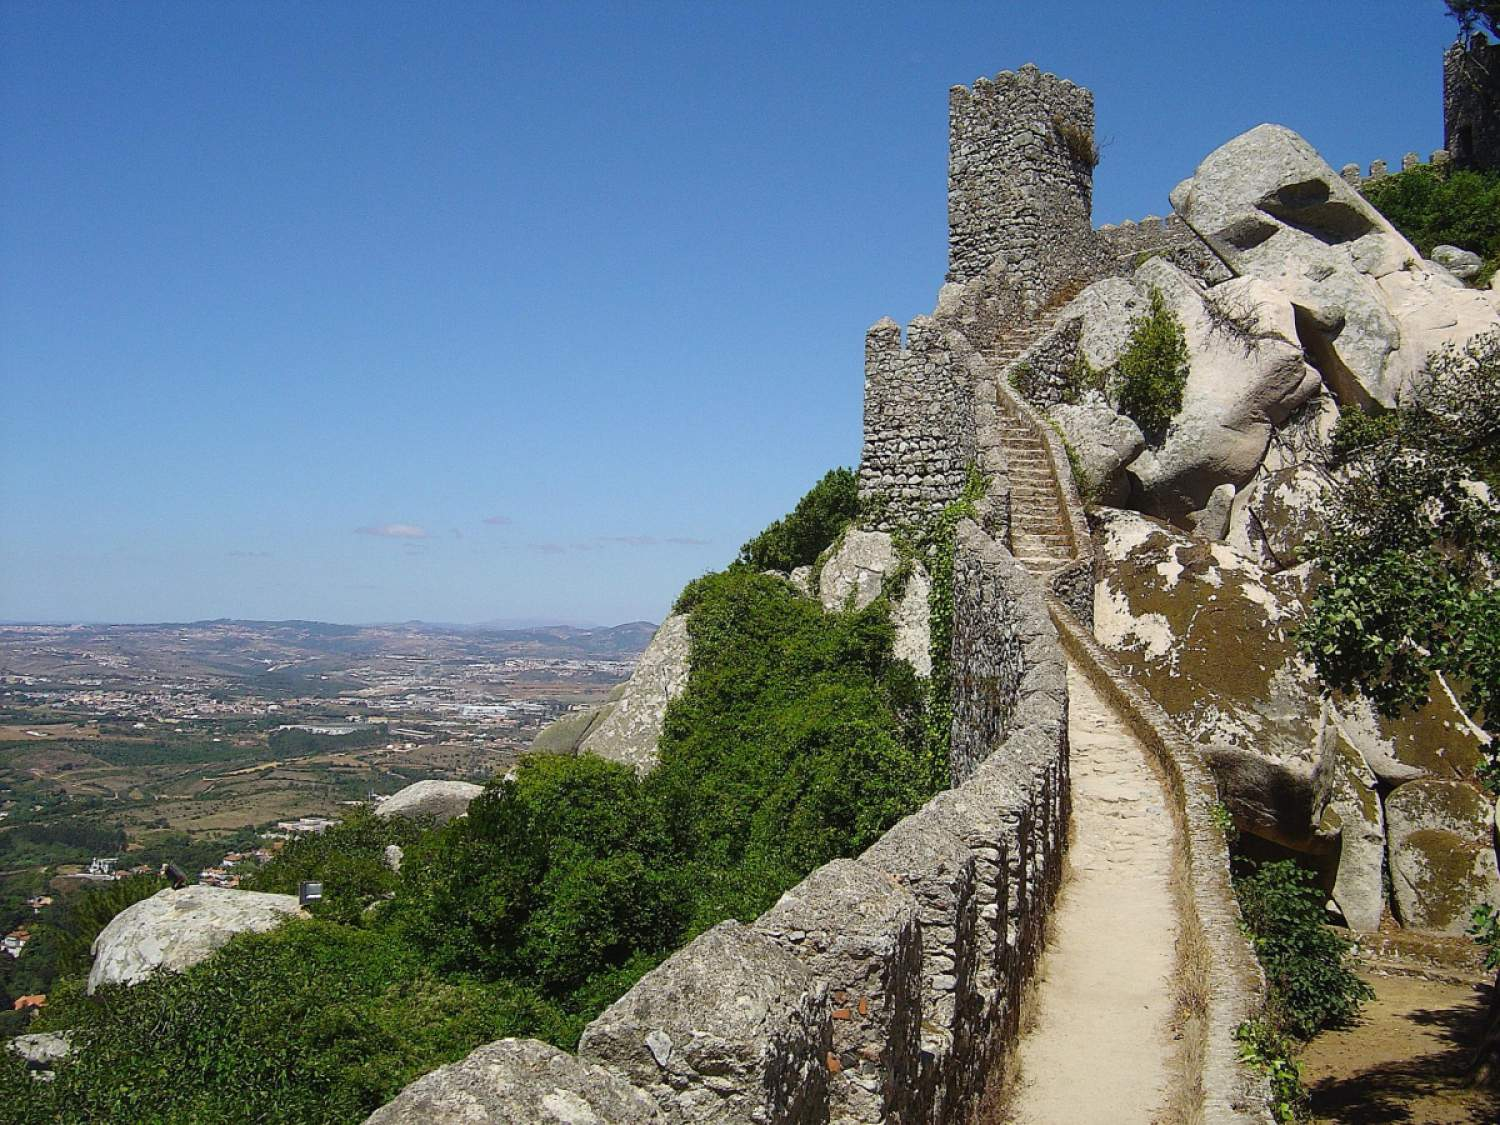 Castelo dos Mouros in Sintra, Portugal